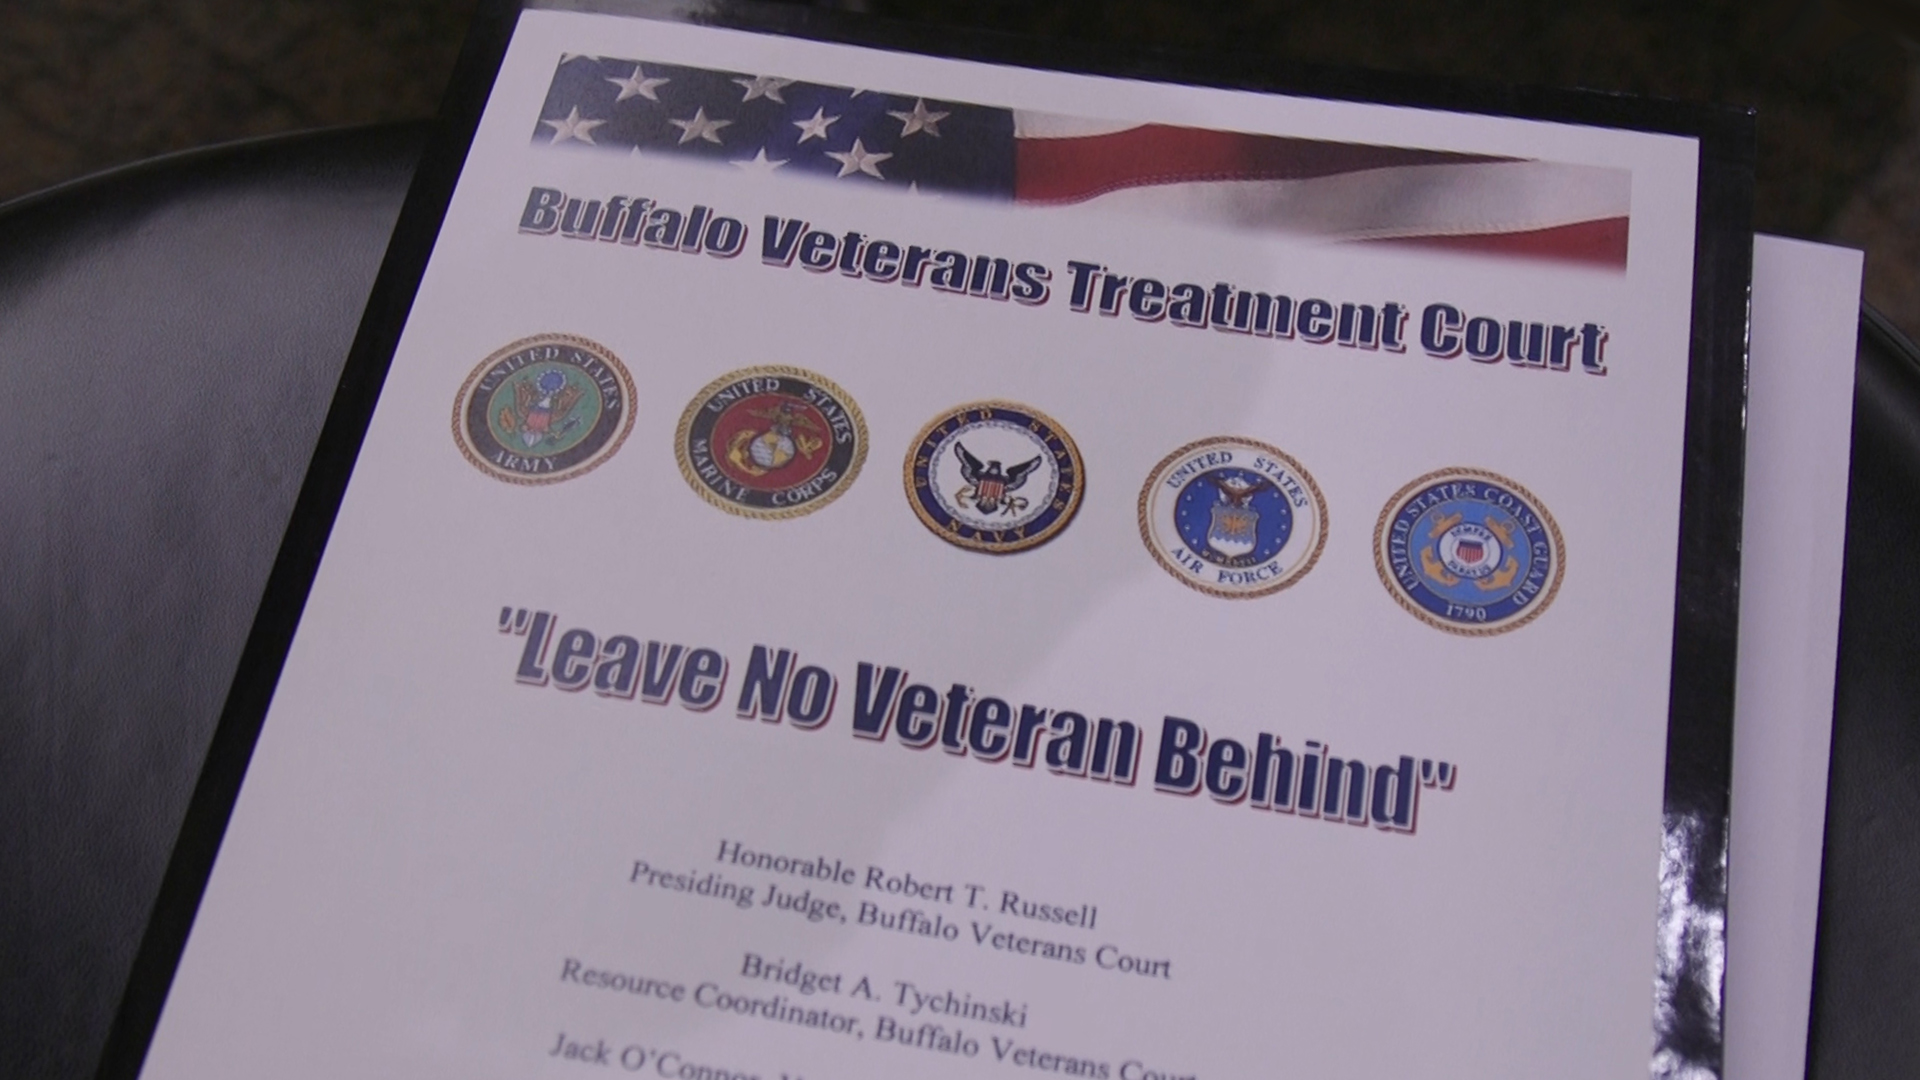 In specialized treatment court, no veteran is left behind